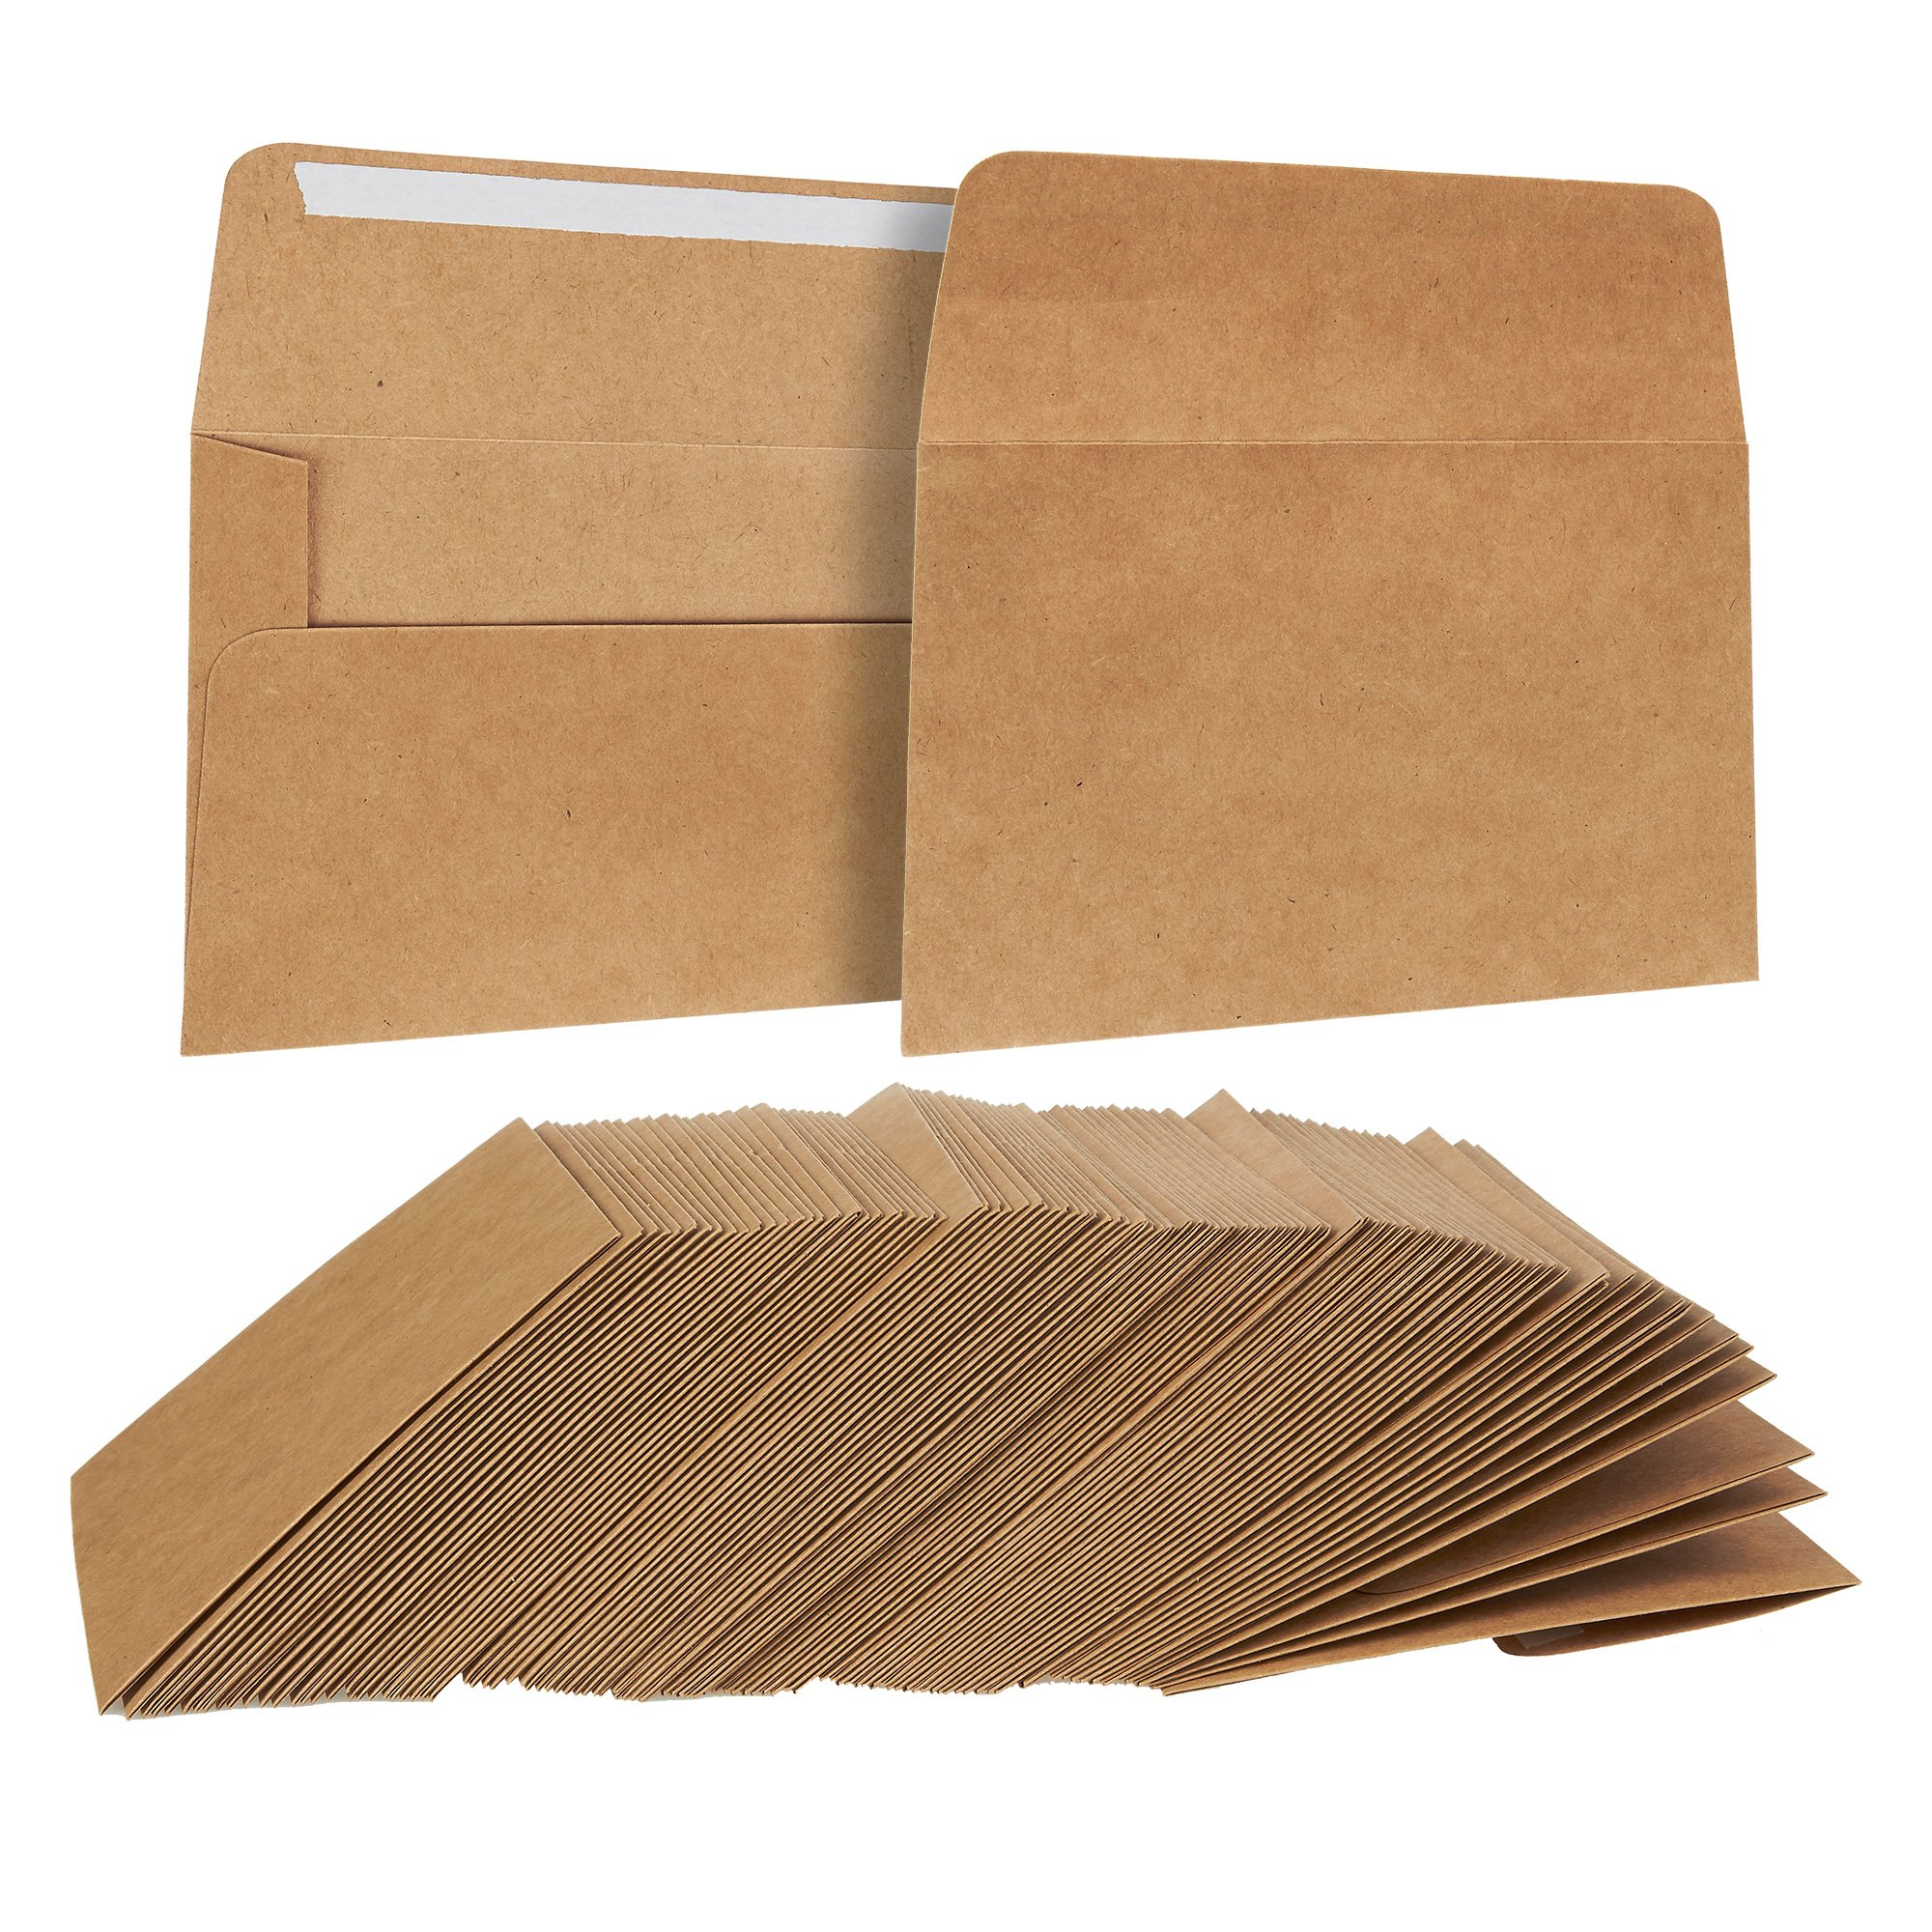 100 Pack, Size A2 Brown Kraft Paper Envelopes Self Sealing Adhesive Stationery For General, Office, Home Use - Tan - Set of 100-4.375 x5.75 Inches